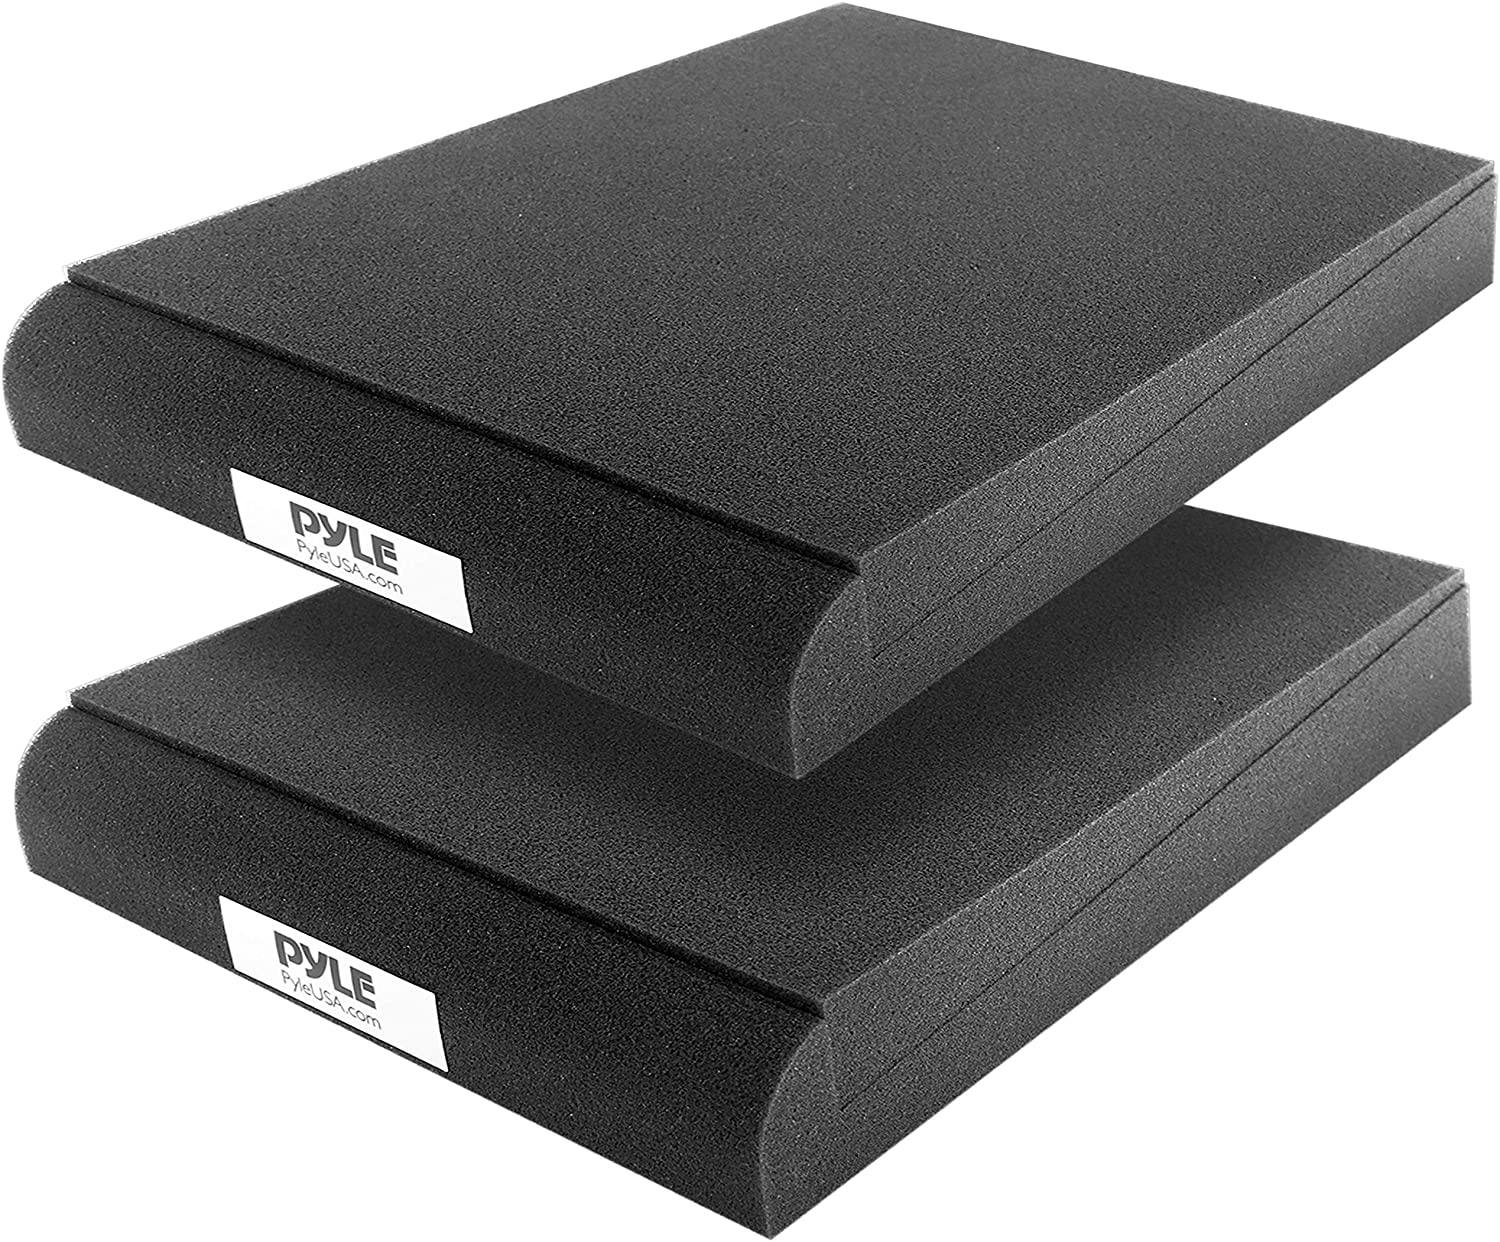 Sound Dampening Speaker Riser Foam - Audio Acoustic Noise Isolation Platform Pads Recoil Stabilizer w/ Rubber Base Pad For Studio Monitor, Subwoofer, Loud Speakers - Pyle PSI03 (9 x 12 x 2 Inch, Pair)